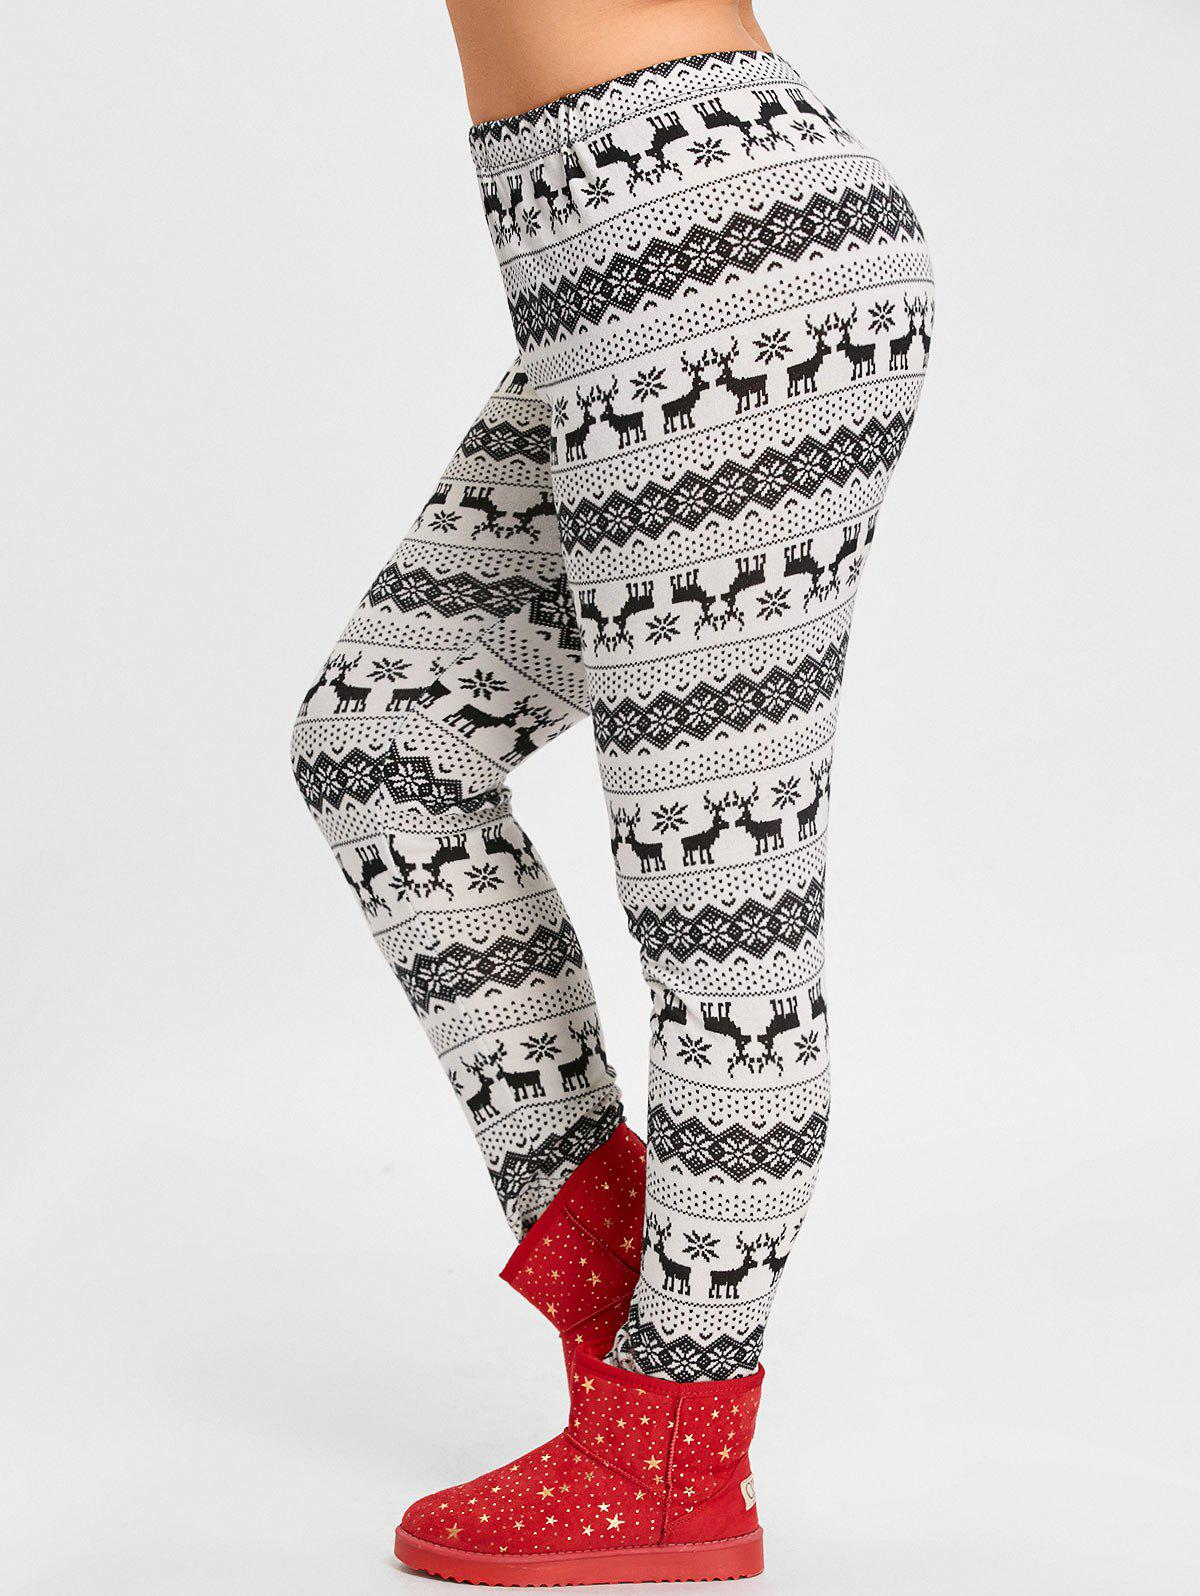 Christmas Snowflake Elk Jacquard Plus Size LeggingsWOMEN<br><br>Size: 2XL; Color: BLACK; Style: Casual; Length: Normal; Material: Acrylic,Polyester; Fit Type: Regular; Waist Type: Mid; Closure Type: Elastic Waist; Pattern Type: Animal; Pant Style: Pencil Pants; With Belt: No; Weight: 0.2850kg; Package Contents: 1 x Leggings;